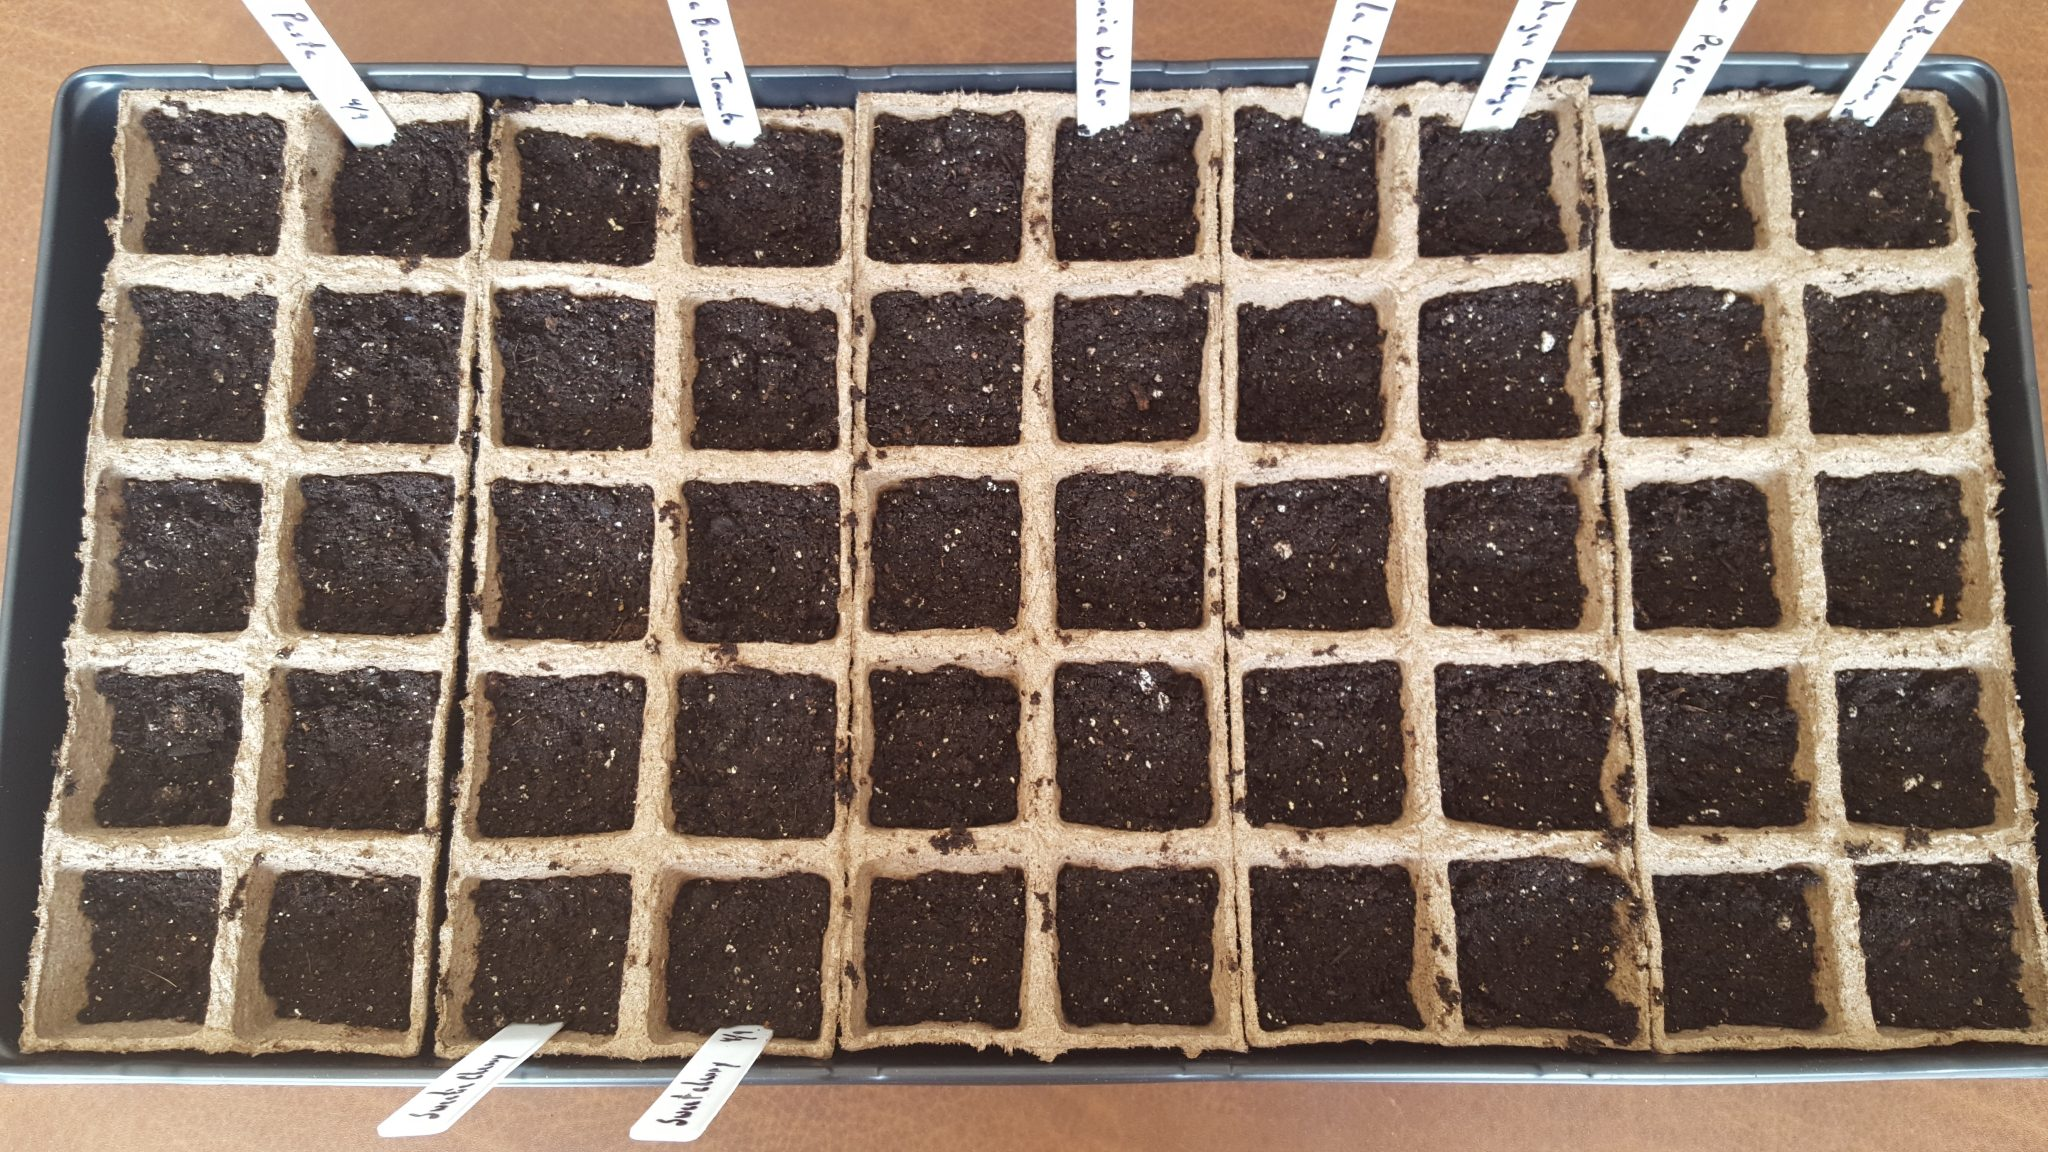 Planting Seeds Indoors